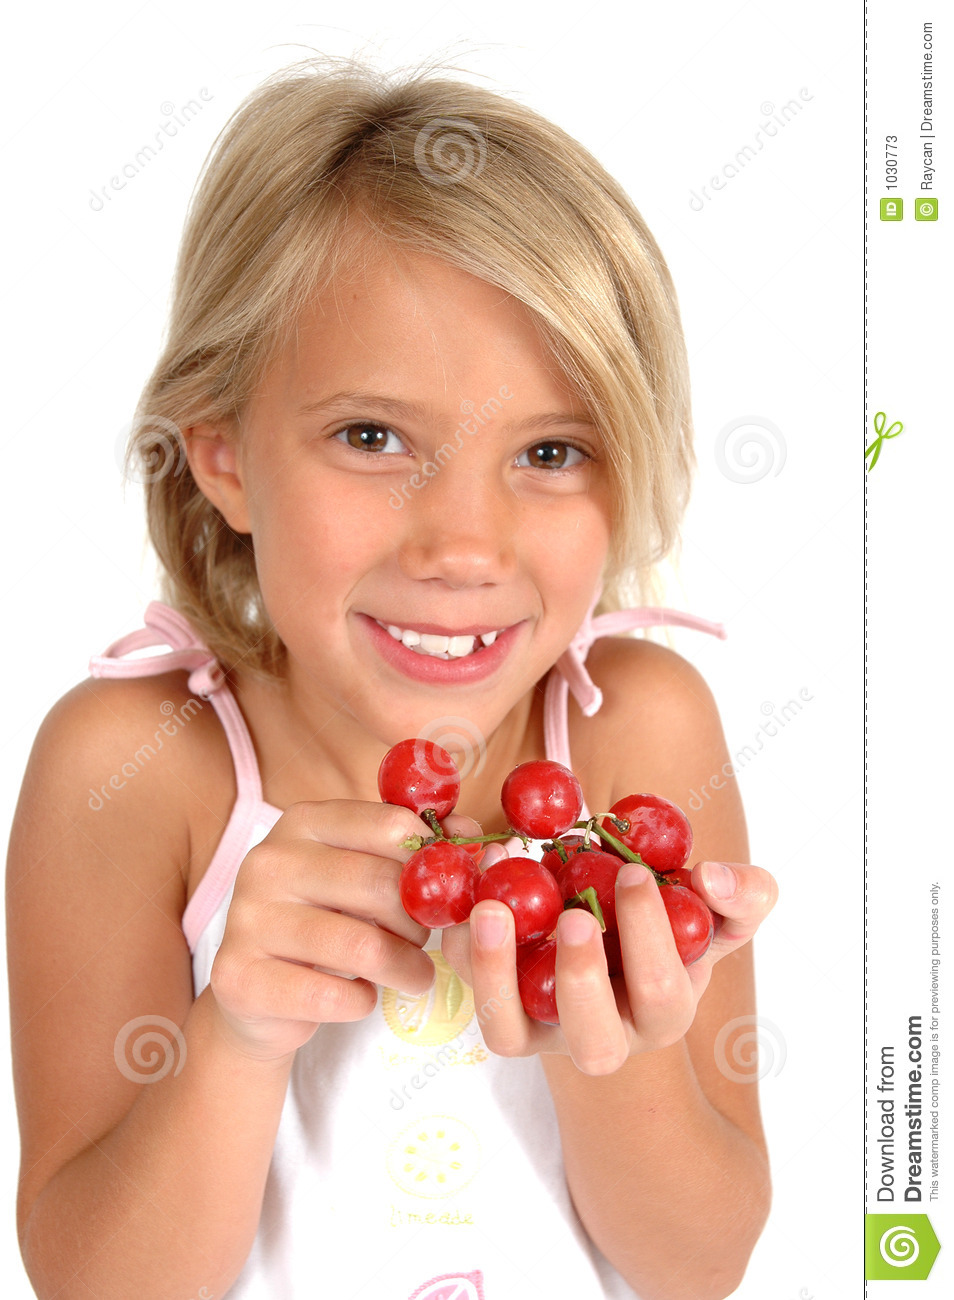 Kids and Fruit